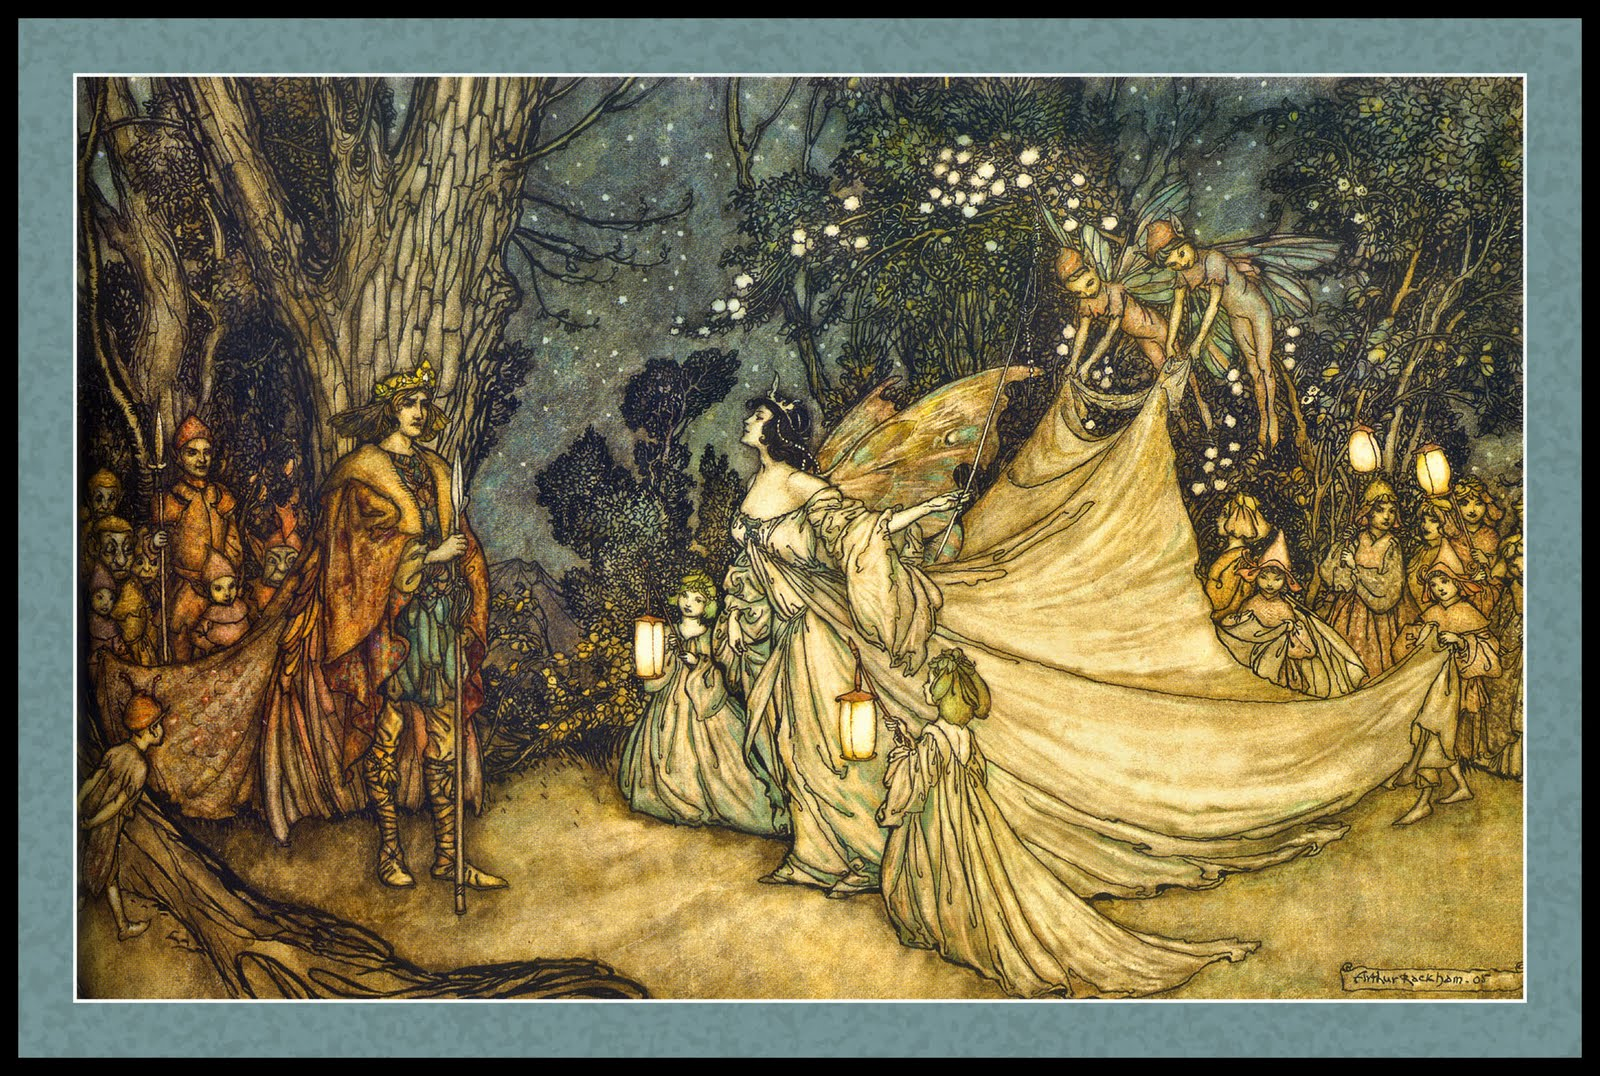 a midsummer nights dream contrast in Free coursework on a midsummer nights dream contrast in human mentality from essayukcom, the uk essays company for essay, dissertation and coursework writing.